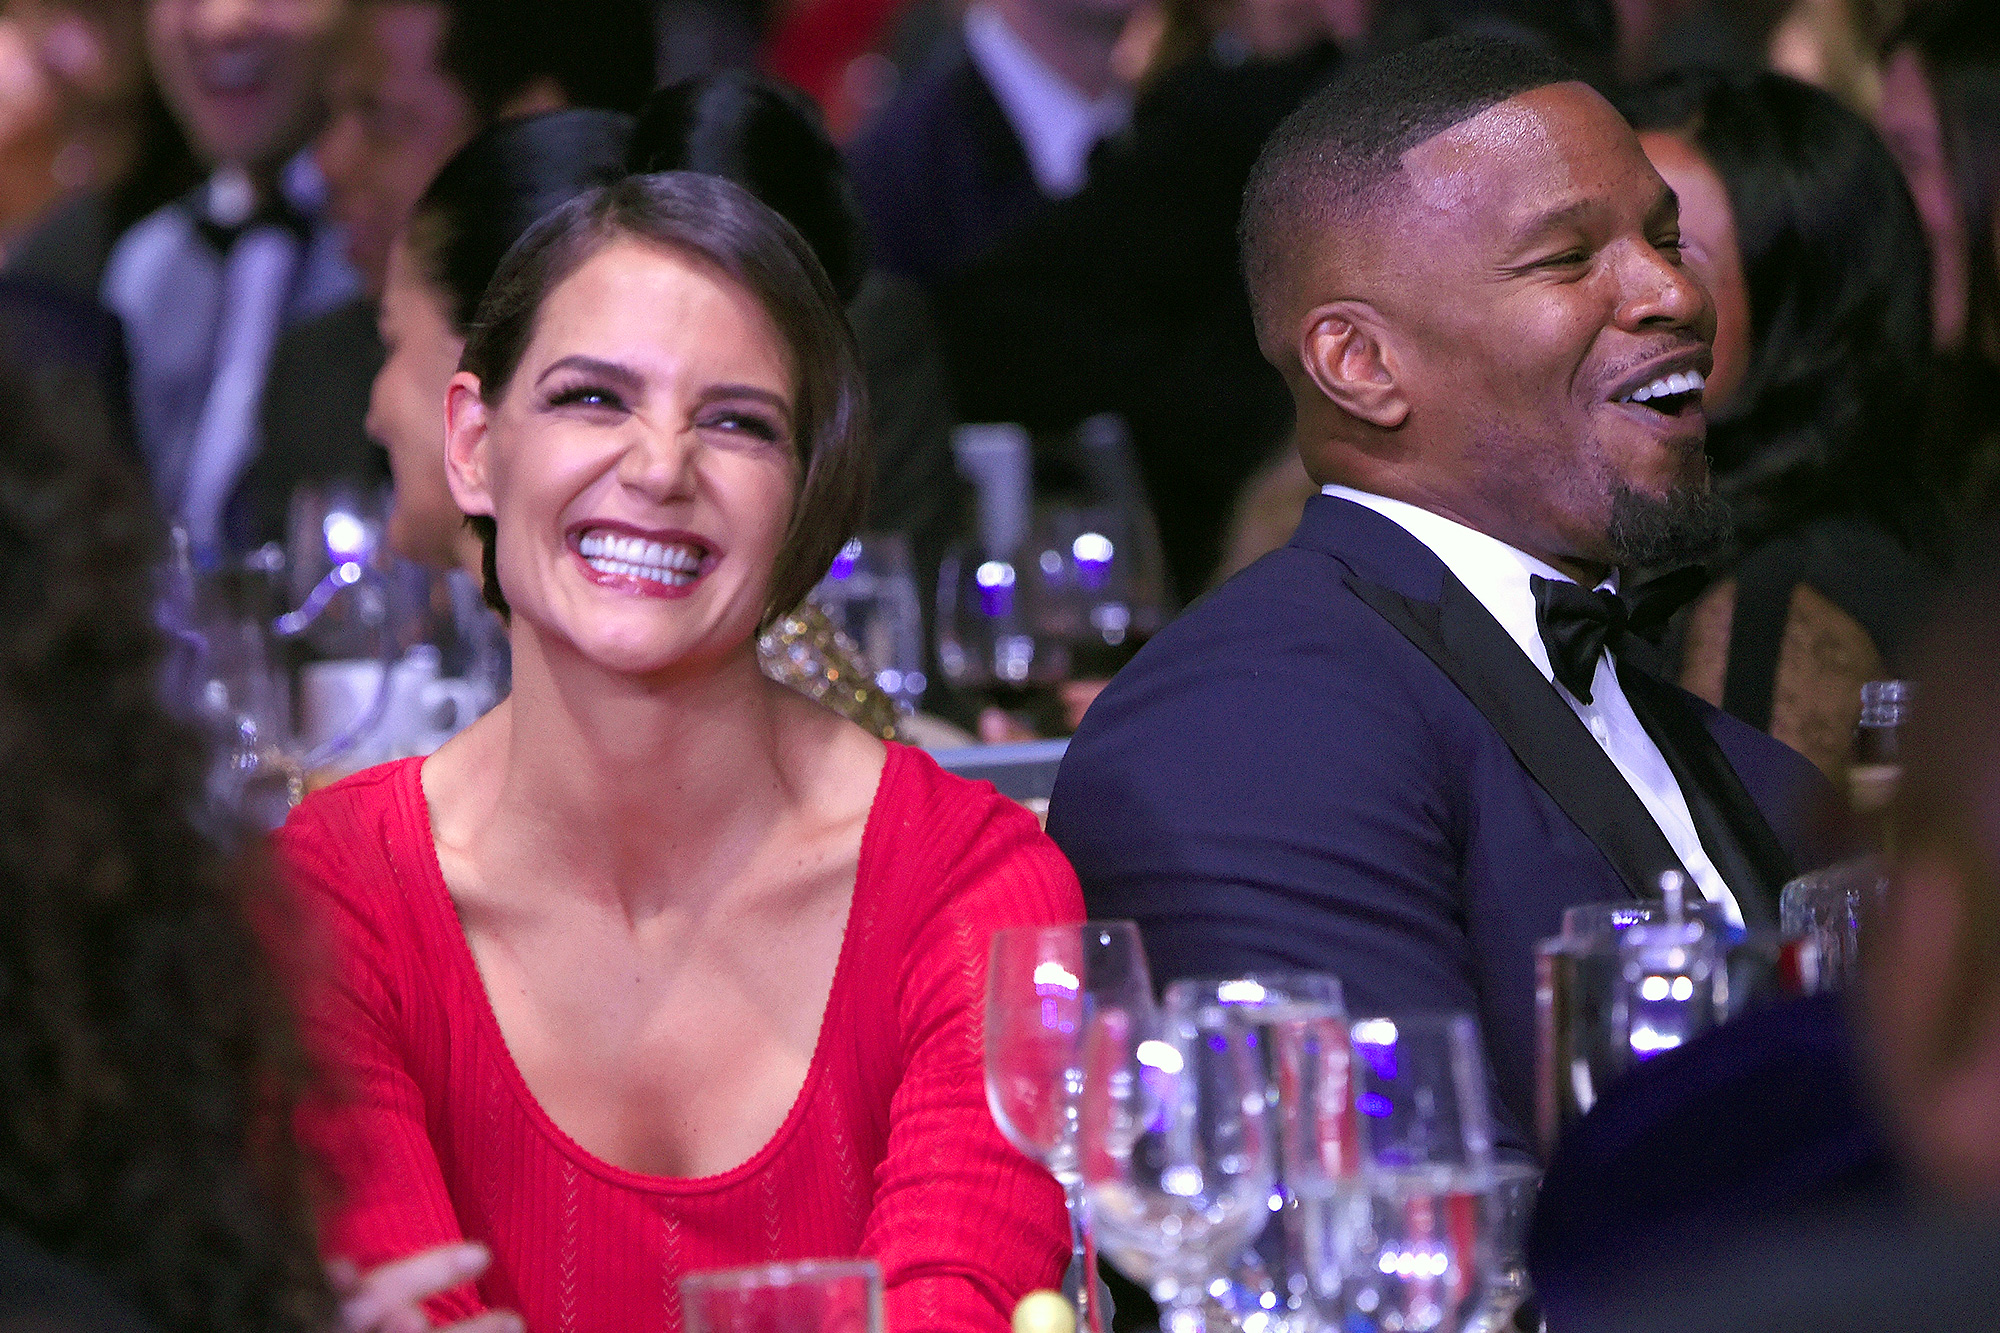 Katie Holmes, Jamie Foxx, Lumiere De Vie Hommes Launch Event, Superyacht Utopia IV - Katie Holmes and Jamie Foxx attend the Clive Davis and Recording Academy Pre-GRAMMY Gala on January 27, 2018 in New York City.